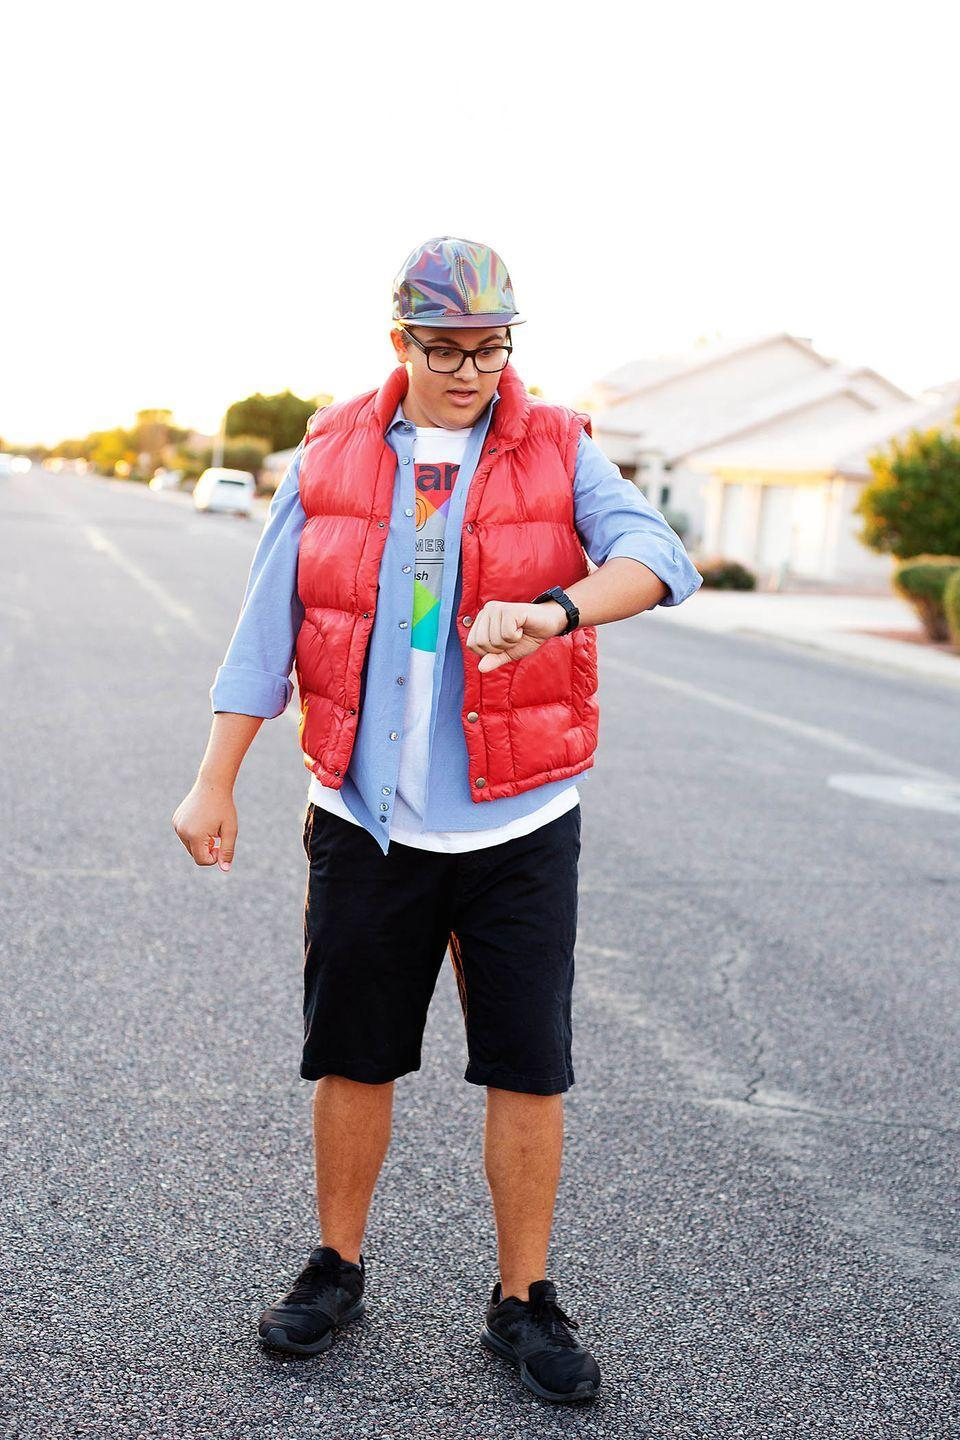 """<p>Hello, McFly! This easy, last-minute <em>Back to the Future</em> costume will have all your friends saying, """"Great Scott!"""" All you'll need to dress as Marty McFly is a red puffer vest, holographic hat, and an '80s calculator watch. Where you're going, you don't need roads!</p><p><strong>See more at <a href=""""https://allfortheboys.com/halloween-costumes-for-teens/"""" rel=""""nofollow noopener"""" target=""""_blank"""" data-ylk=""""slk:All for the Boys"""" class=""""link rapid-noclick-resp"""">All for the Boys</a></strong>. </p><p><a class=""""link rapid-noclick-resp"""" href=""""https://go.redirectingat.com?id=74968X1596630&url=https%3A%2F%2Fwww.walmart.com%2Fip%2FSwissTech-Men-s-and-Big-Men-s-Puffer-Vest-up-to-Size-5XL%2F271288839&sref=https%3A%2F%2Fwww.thepioneerwoman.com%2Fholidays-celebrations%2Fg32645069%2F80s-halloween-costumes%2F"""" rel=""""nofollow noopener"""" target=""""_blank"""" data-ylk=""""slk:SHOP RED PUFFER VEST"""">SHOP RED PUFFER VEST</a></p>"""